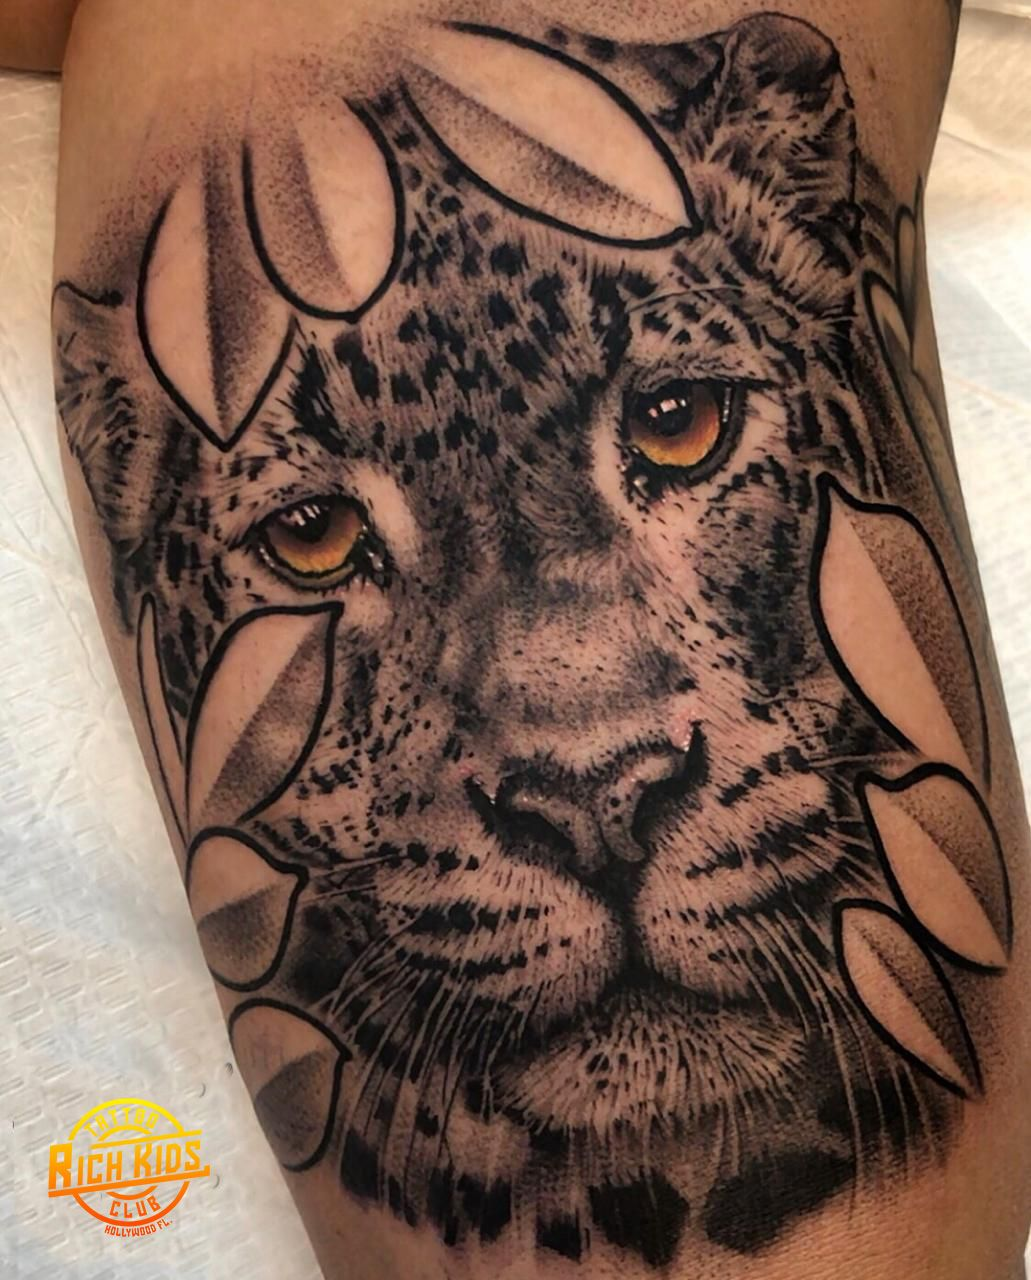 Realistic Single Needle Tiger Tattoo Black And Grey Tiger With Colored Eyes Tattoo Tigre Tattoo Tigertattoo In 2020 Tiger Tattoo Tattoos For Kids Animal Tattoo